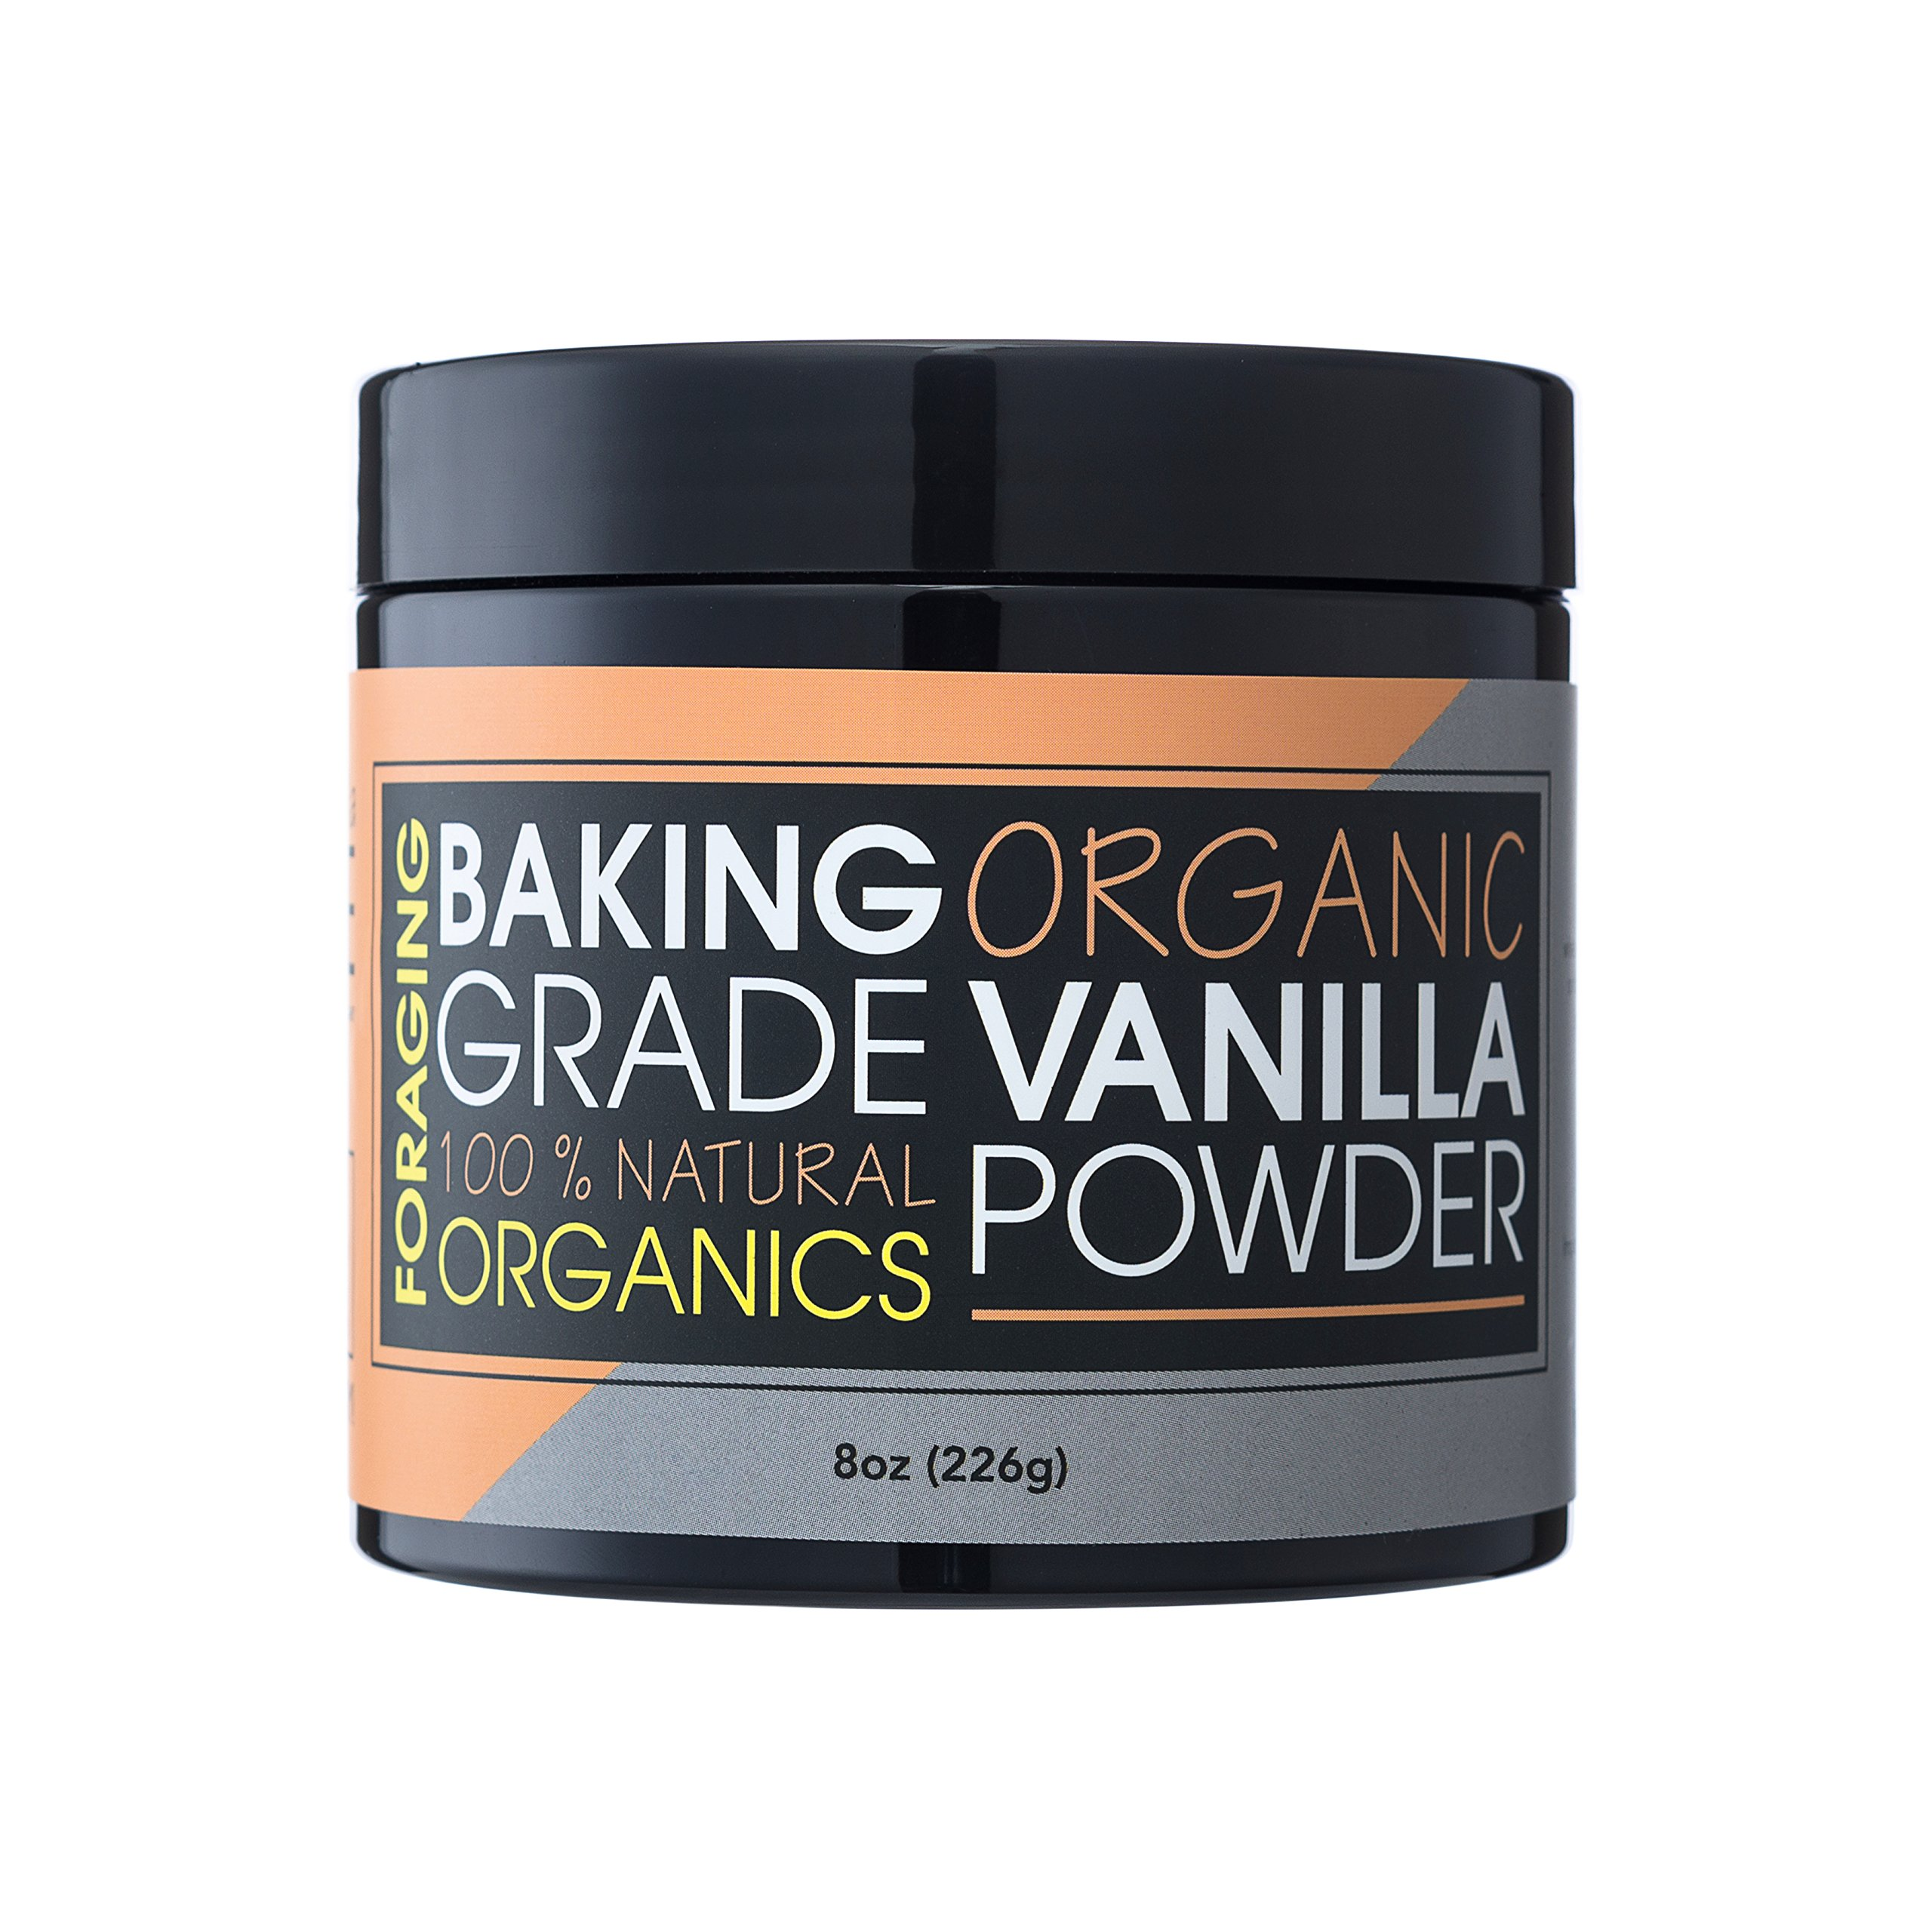 Foraging Organic Vanilla Powder White Baking Culinary Grade Vanilla Bean Extract Substitute For Coffee 100% All Natural